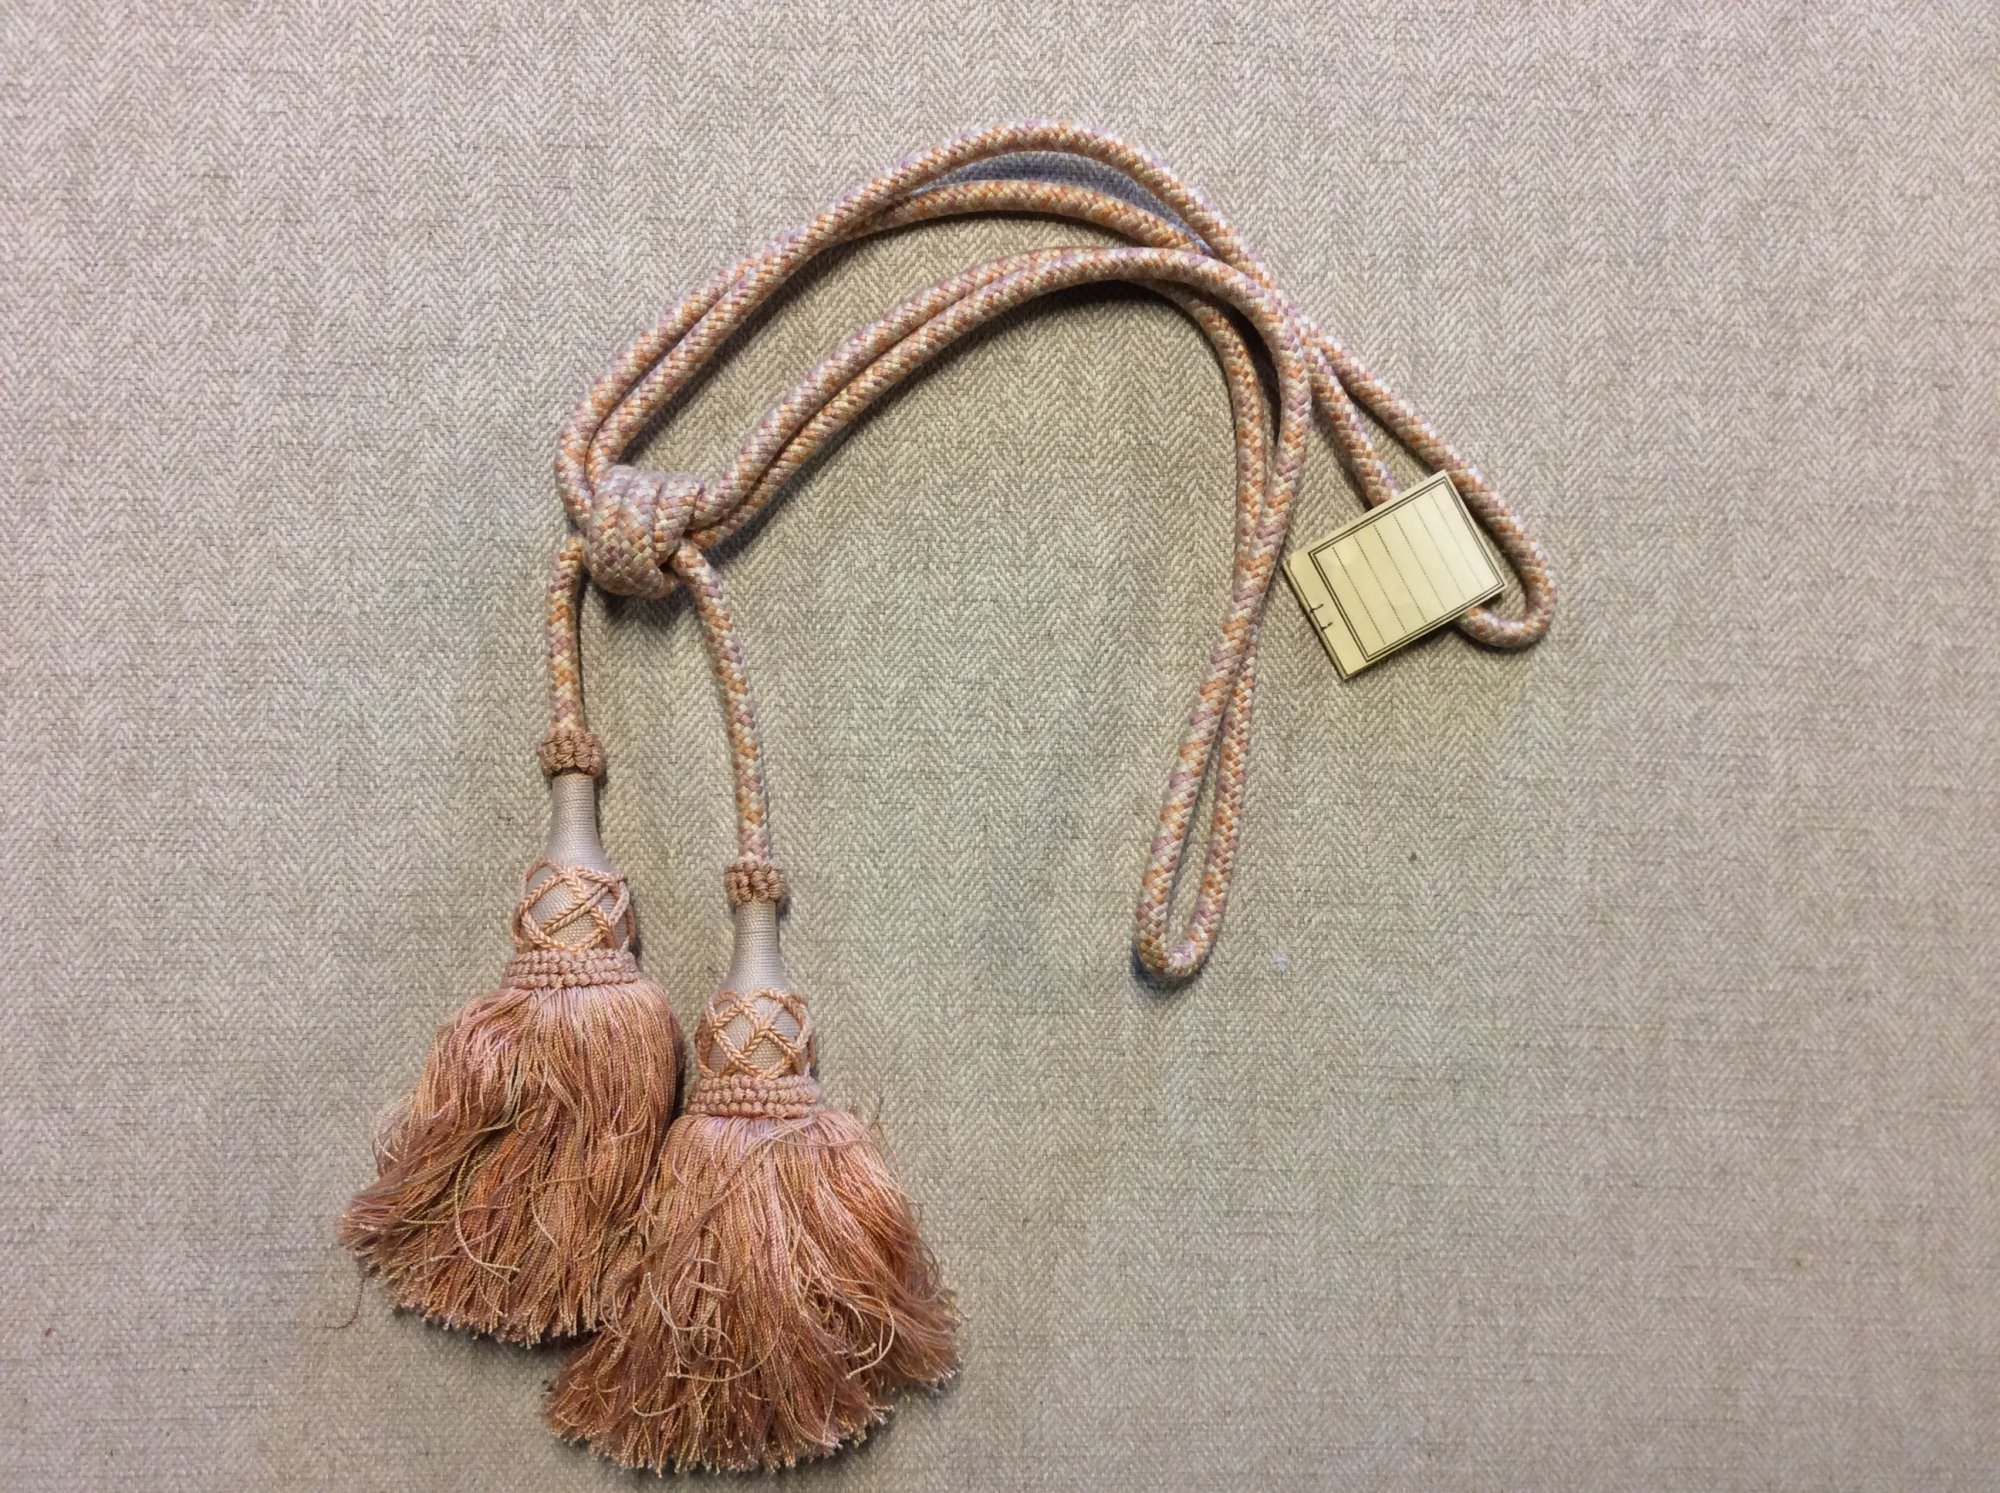 Vintage Brunschwig and Fils Double Tassel Tieback Coral Peach and OffWhite Cotton Drapery Home Decor Tassel 90336.05 Color 6